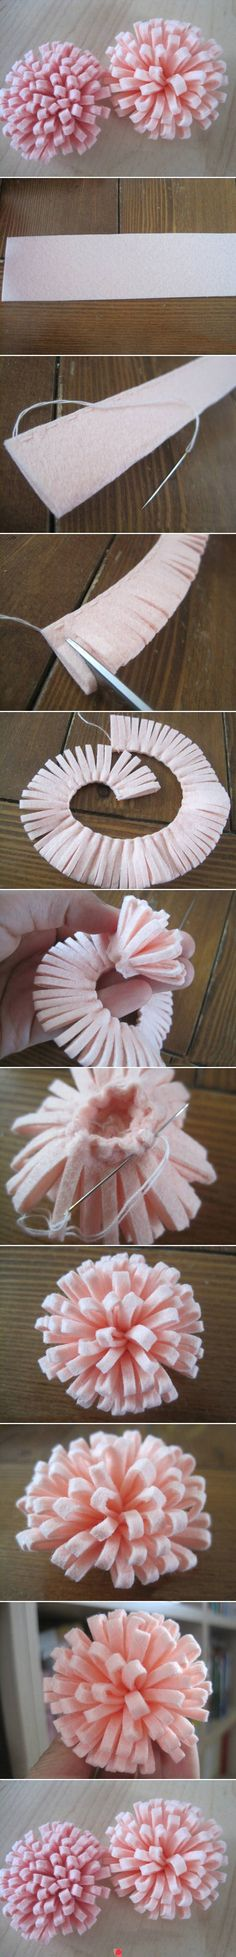 Pretty fringe-cut rolled felt flower.  Idea - use crepe or plain paper to make similar paper flower! :)